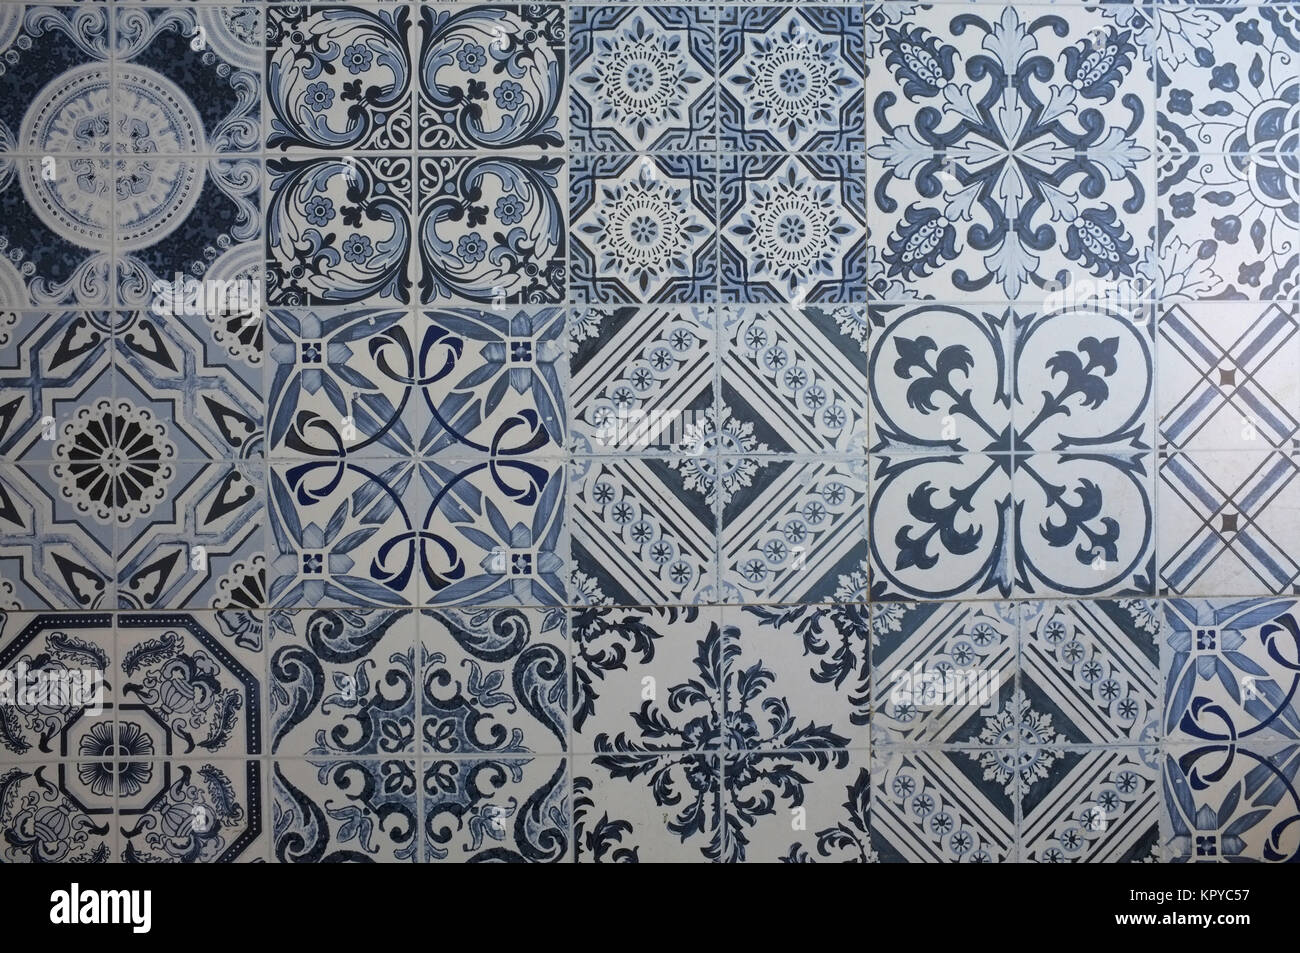 Traditional Vintage Ceramic Tiles Of Portugal Design Stock Photo Alamy